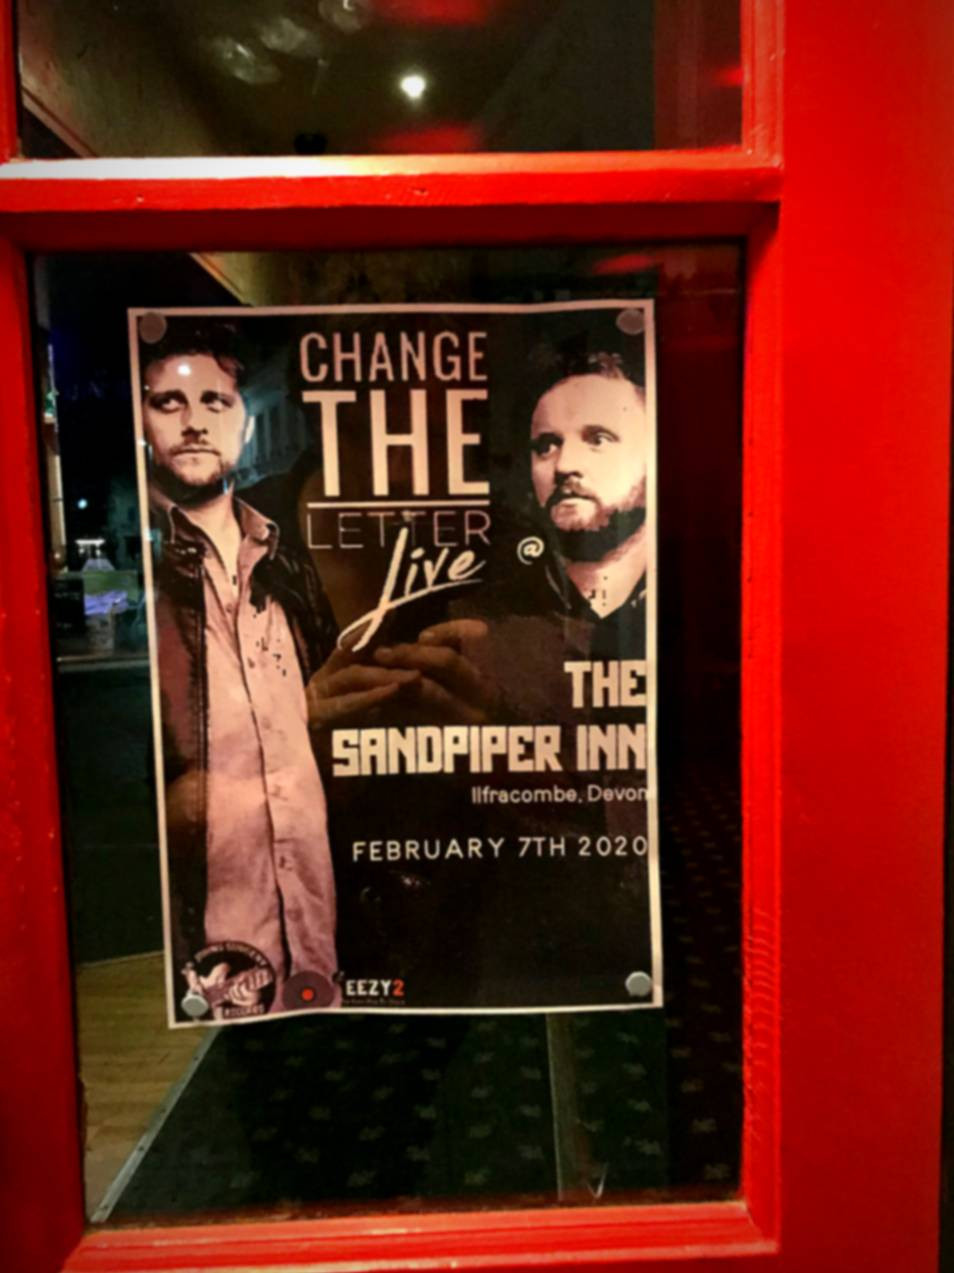 Event poster, Change the Letter live, The Sandpiper Inn, Ilfracombe 7th February 2020